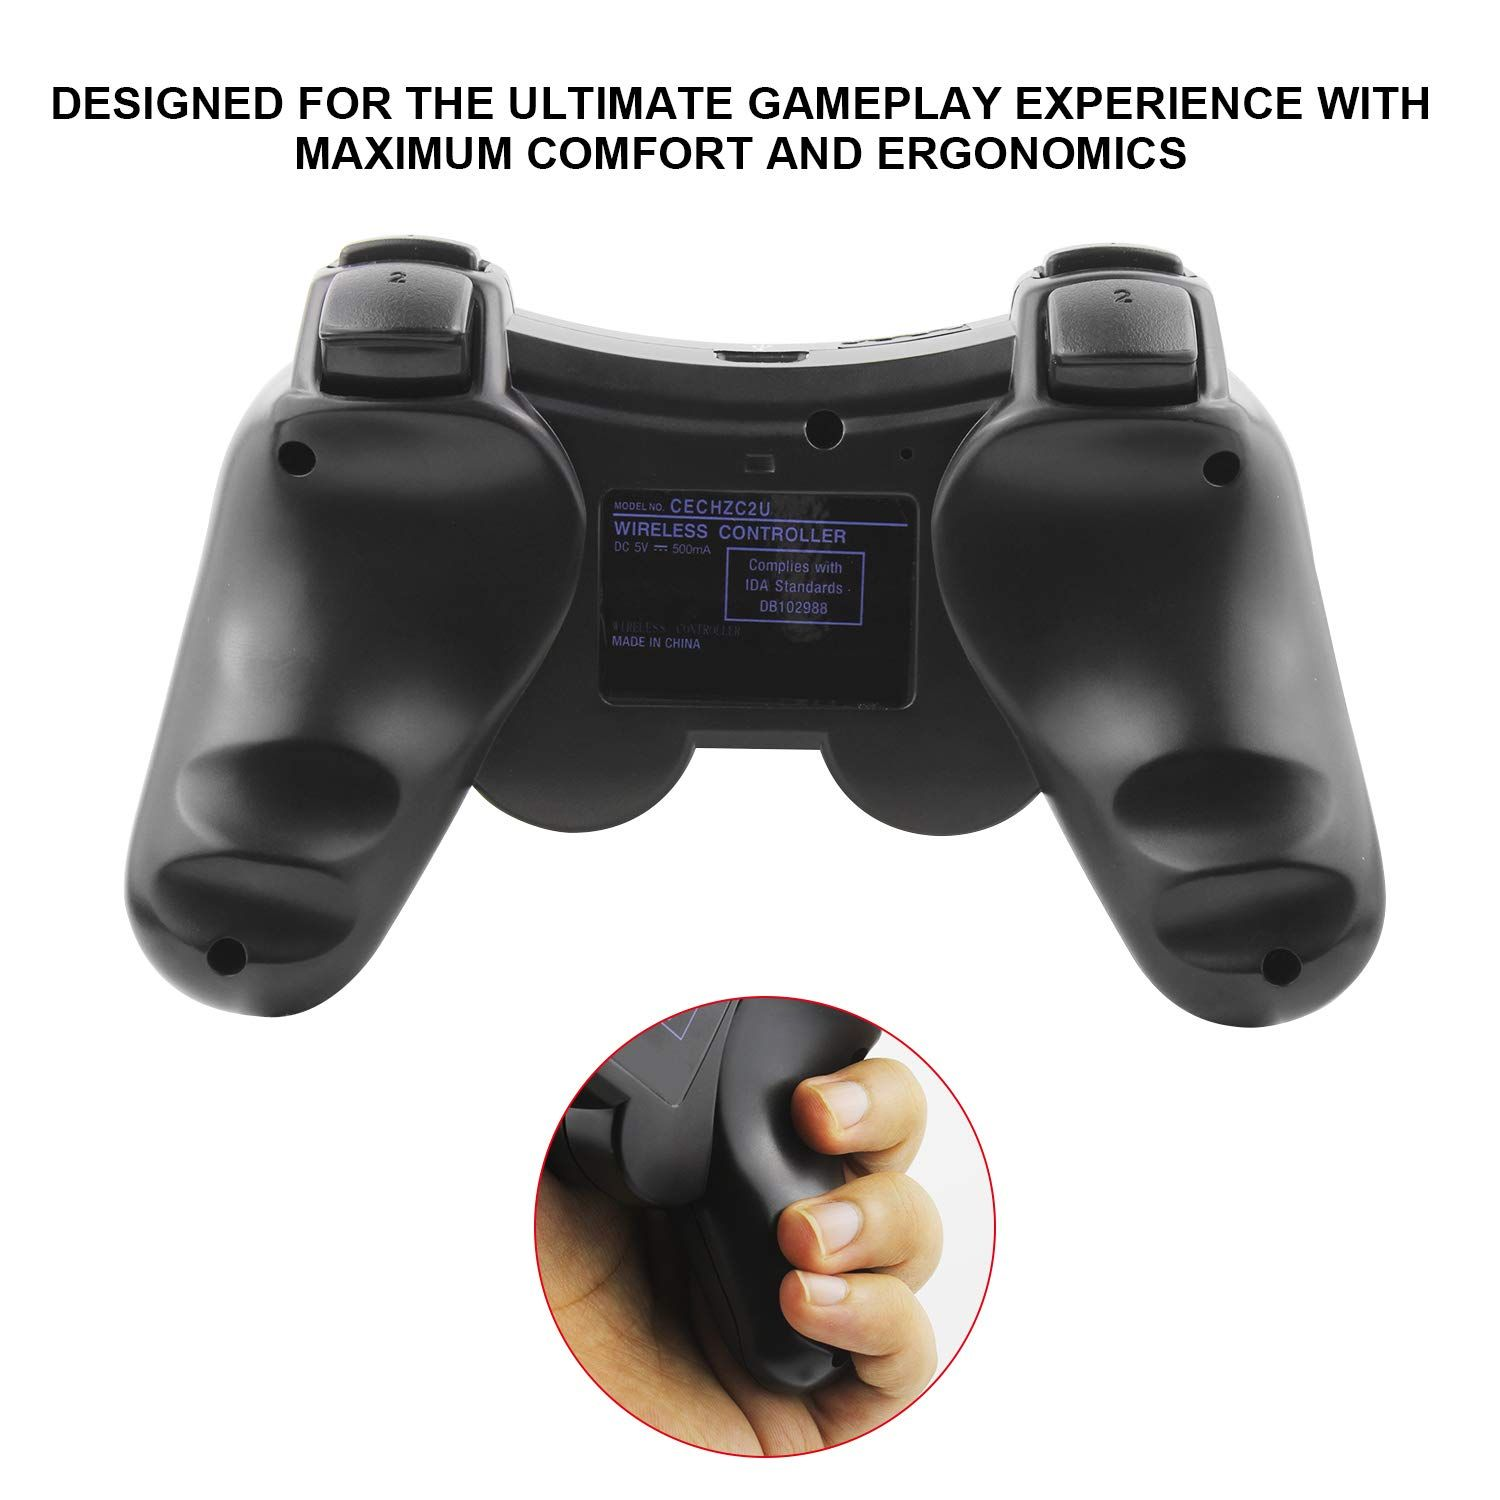 Jamswall Wireless Ps3 Controller Wireless Gamepad For Playstation 3 Bluetooth Gaming Sixaxis Joystic Wireless Controller Online Video Games Video Games Funny